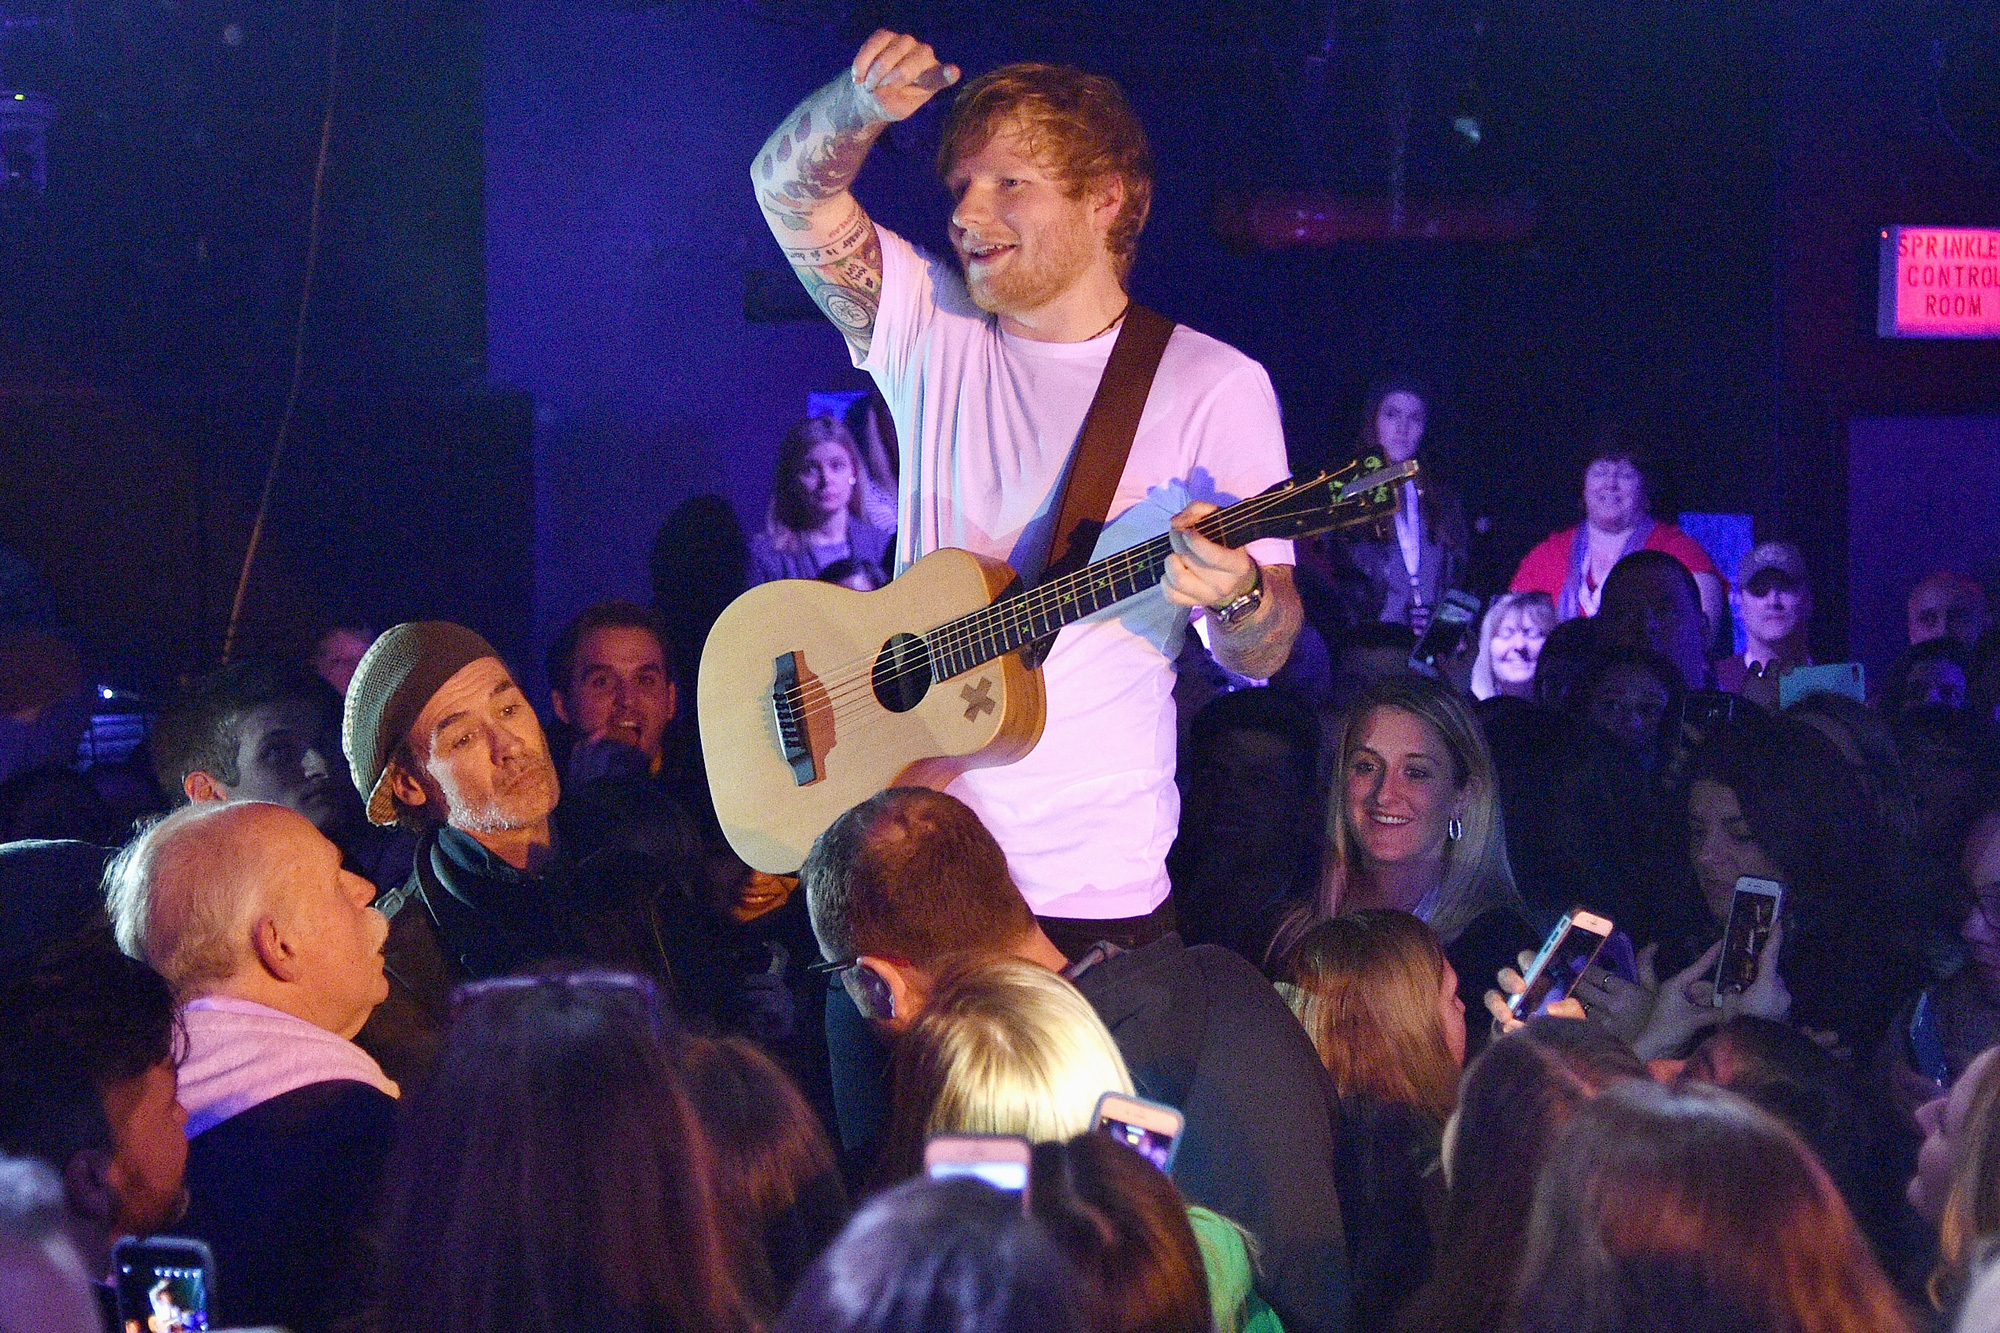 """Ed Sheeran Performs For SiriusXM's """"Secret Show"""" Series At The Studio At Webster Hall; Performance To Air On SiriusXM Hits 1 And The Pulse Channels"""